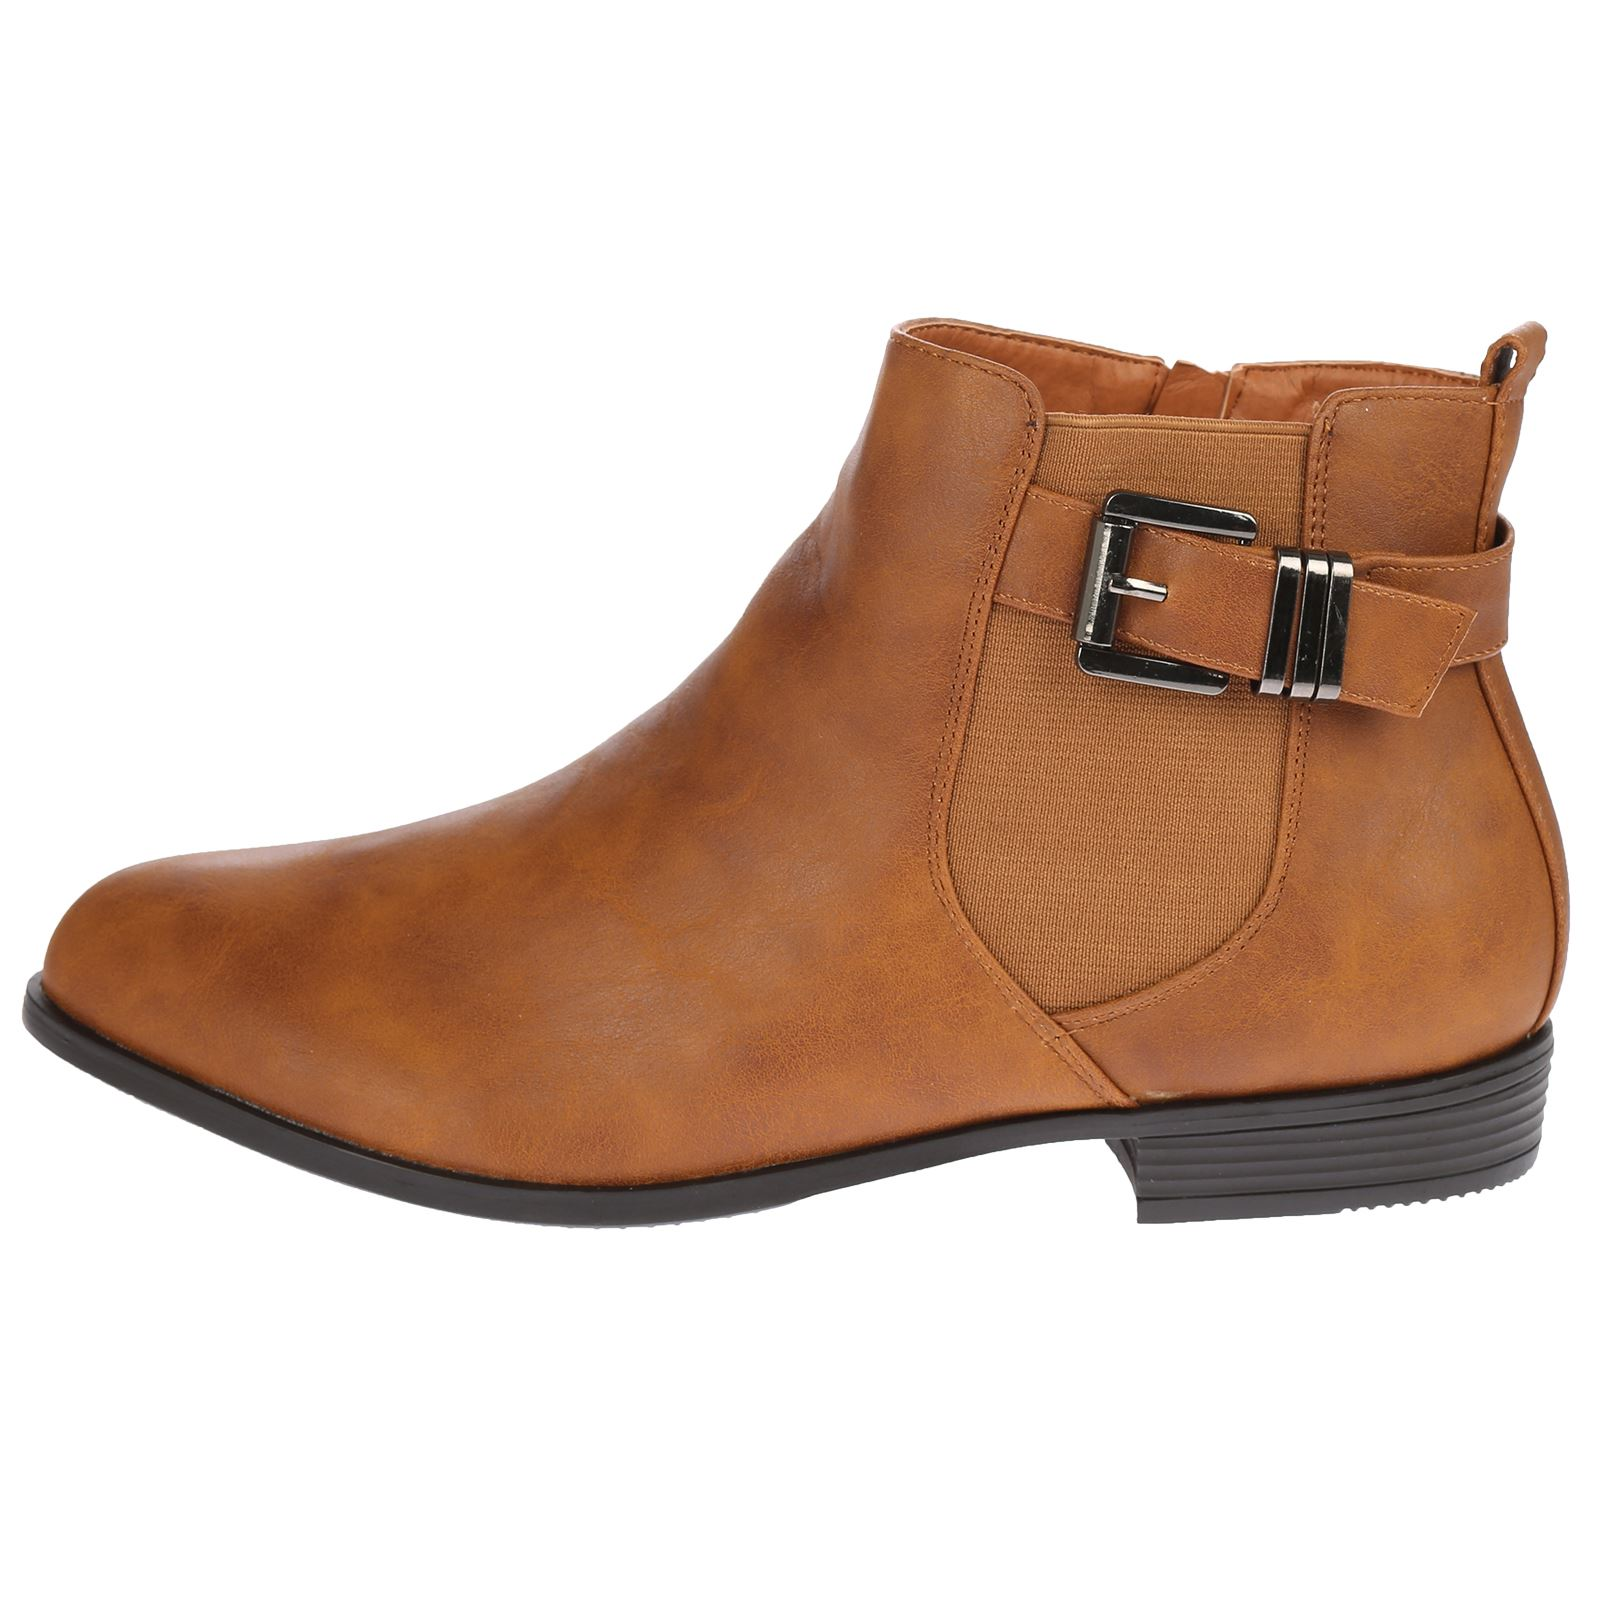 womens boots chelsea buckle ankle biker large size